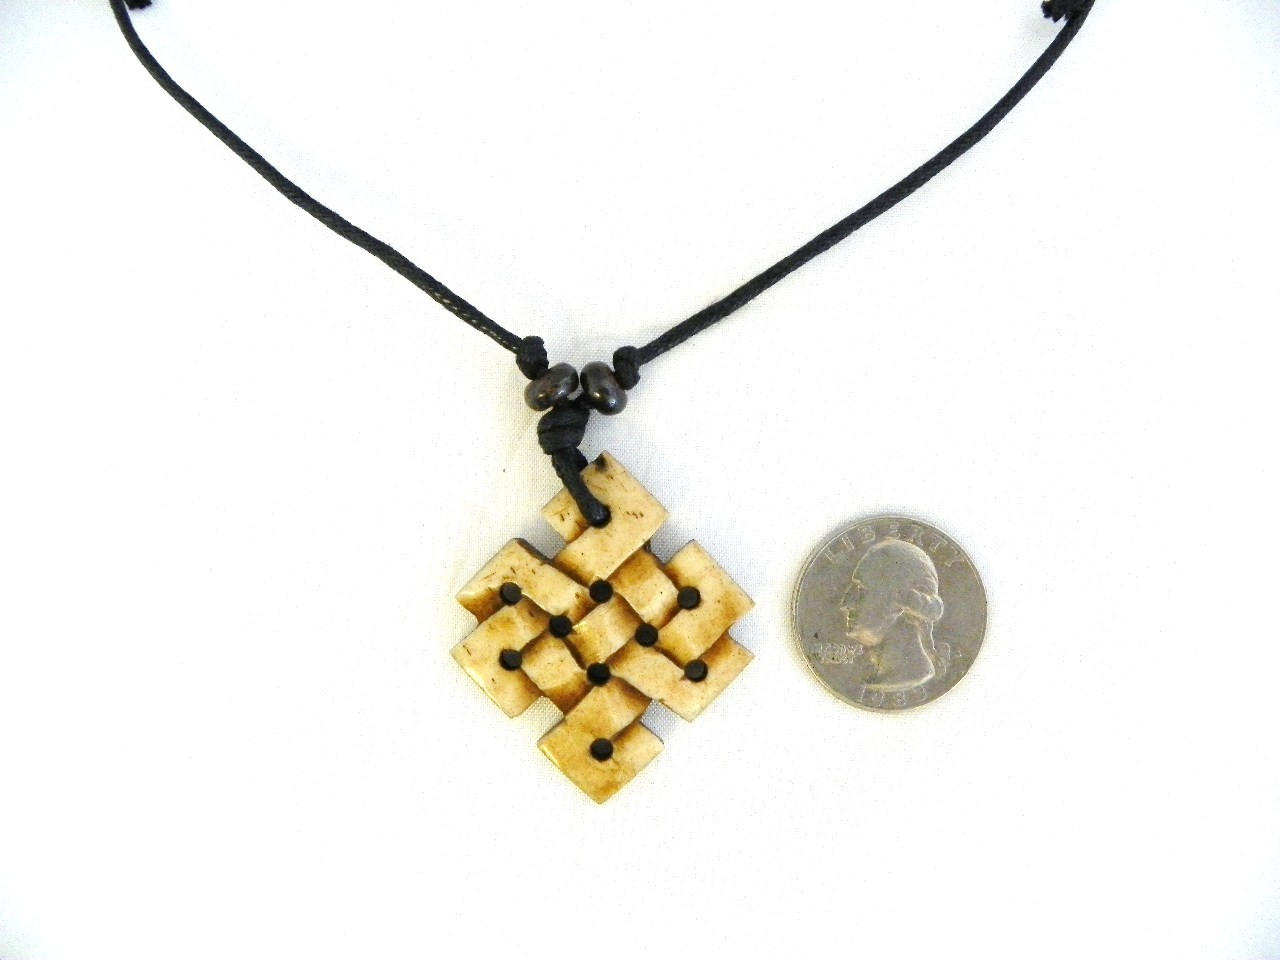 tibetan bone endless knot pendant necklace crafted in